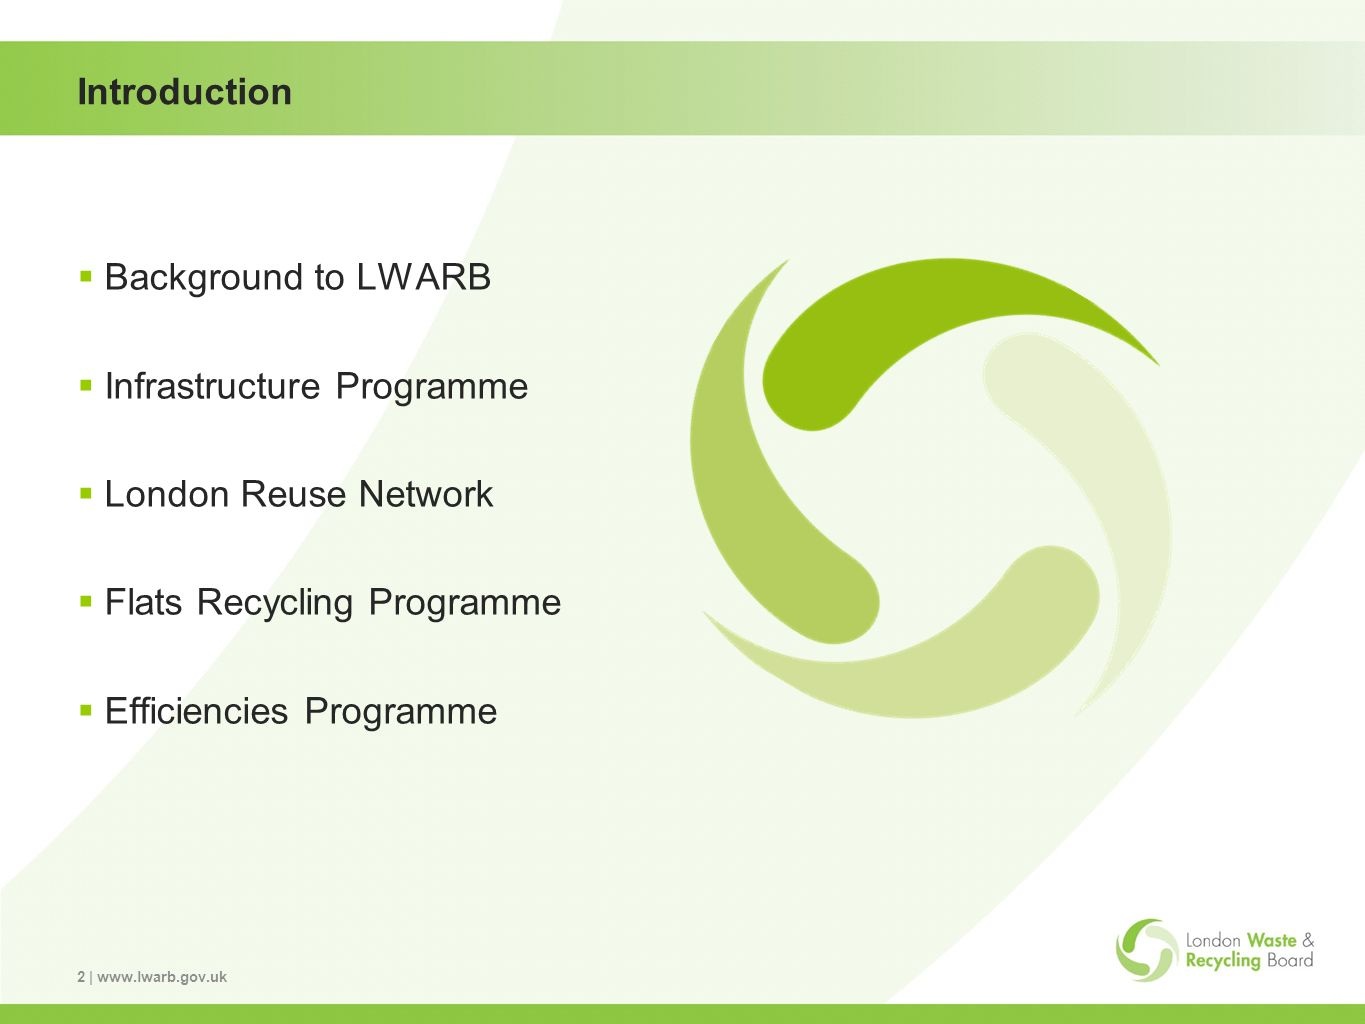 2 | www.lwarb.gov.uk Introduction Background to LWARB Infrastructure Programme London Reuse Network Flats Recycling Programme Efficiencies Programme